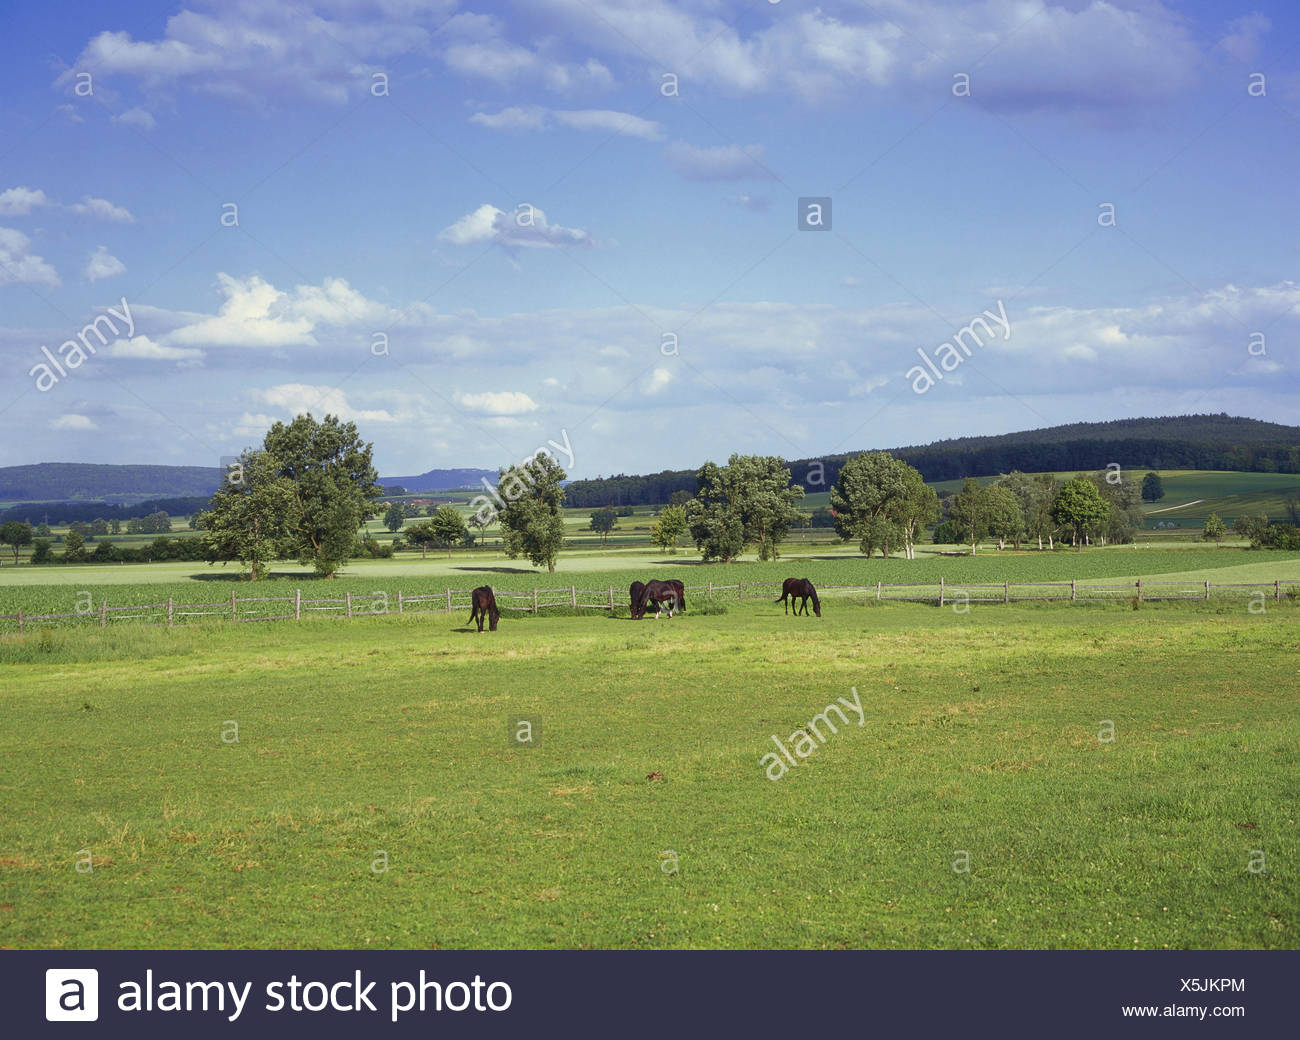 Germany, Bavaria, Central Franconia, white castle, scenery, pasture, horses, francs, agriculture, civilised country, fields, spring, heaven, clouds, deserted, animals, horse's pasture, belt, - Stock Image